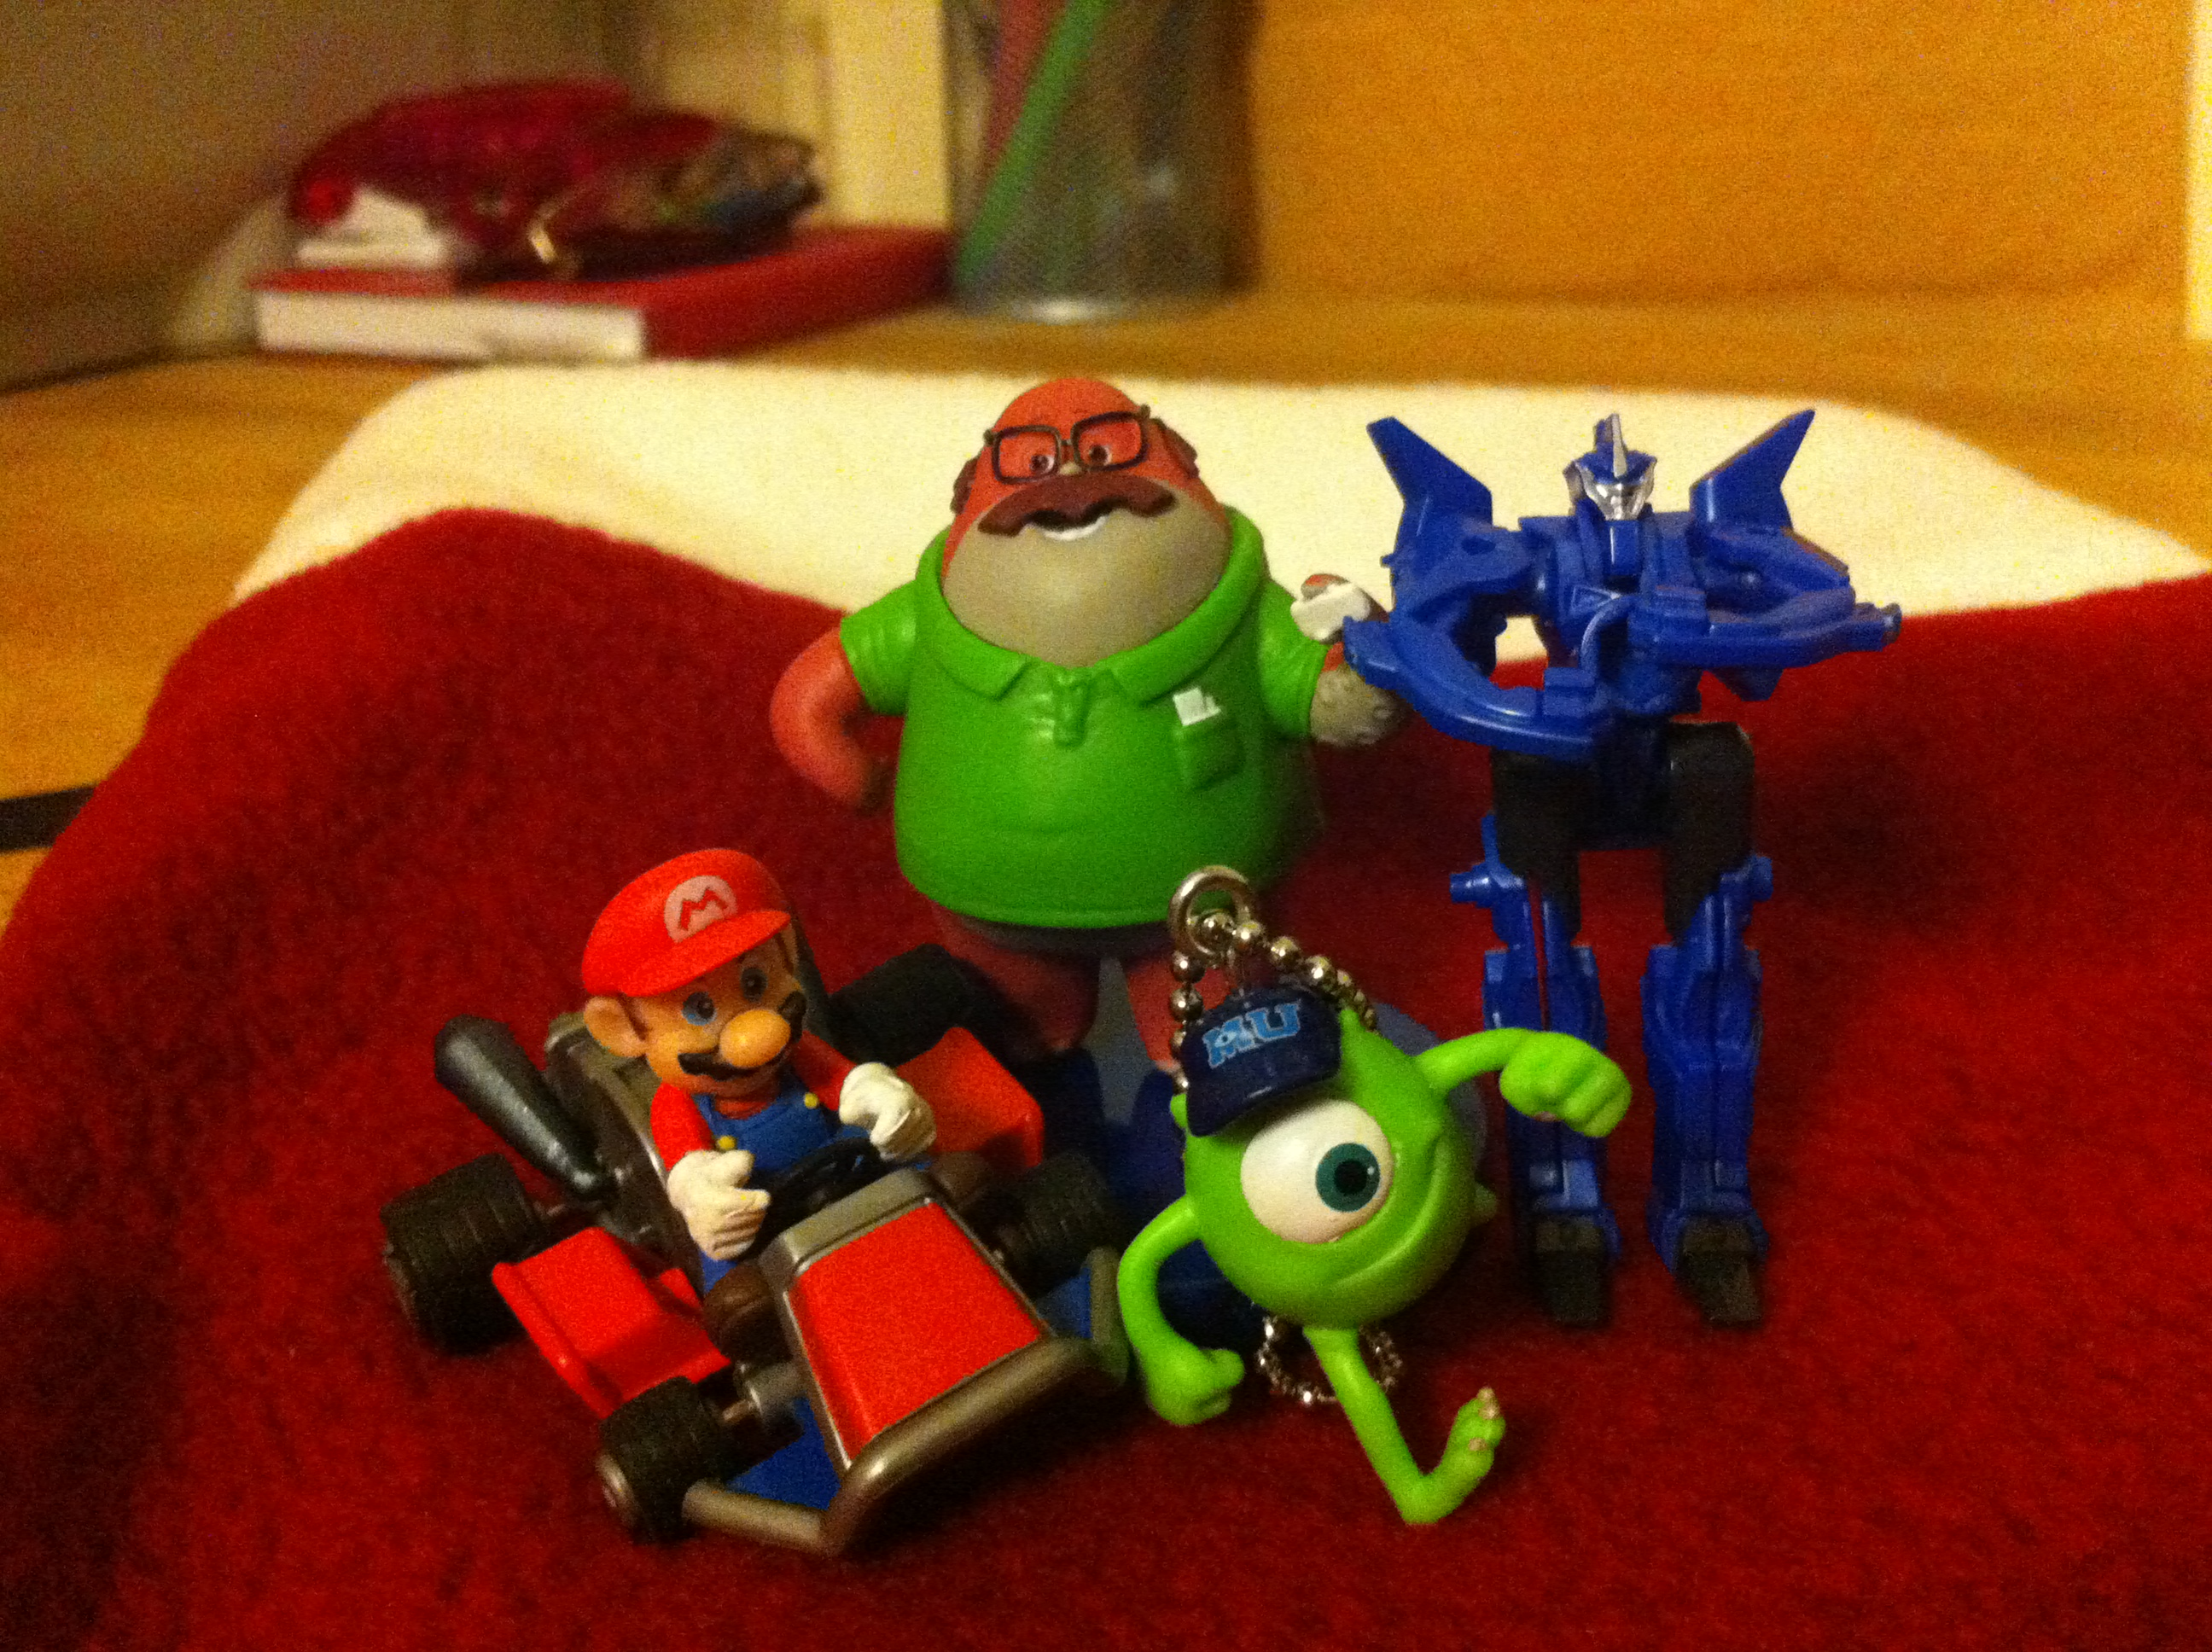 Gacha Stocking Filler Toys from TOMY Lindy Loves